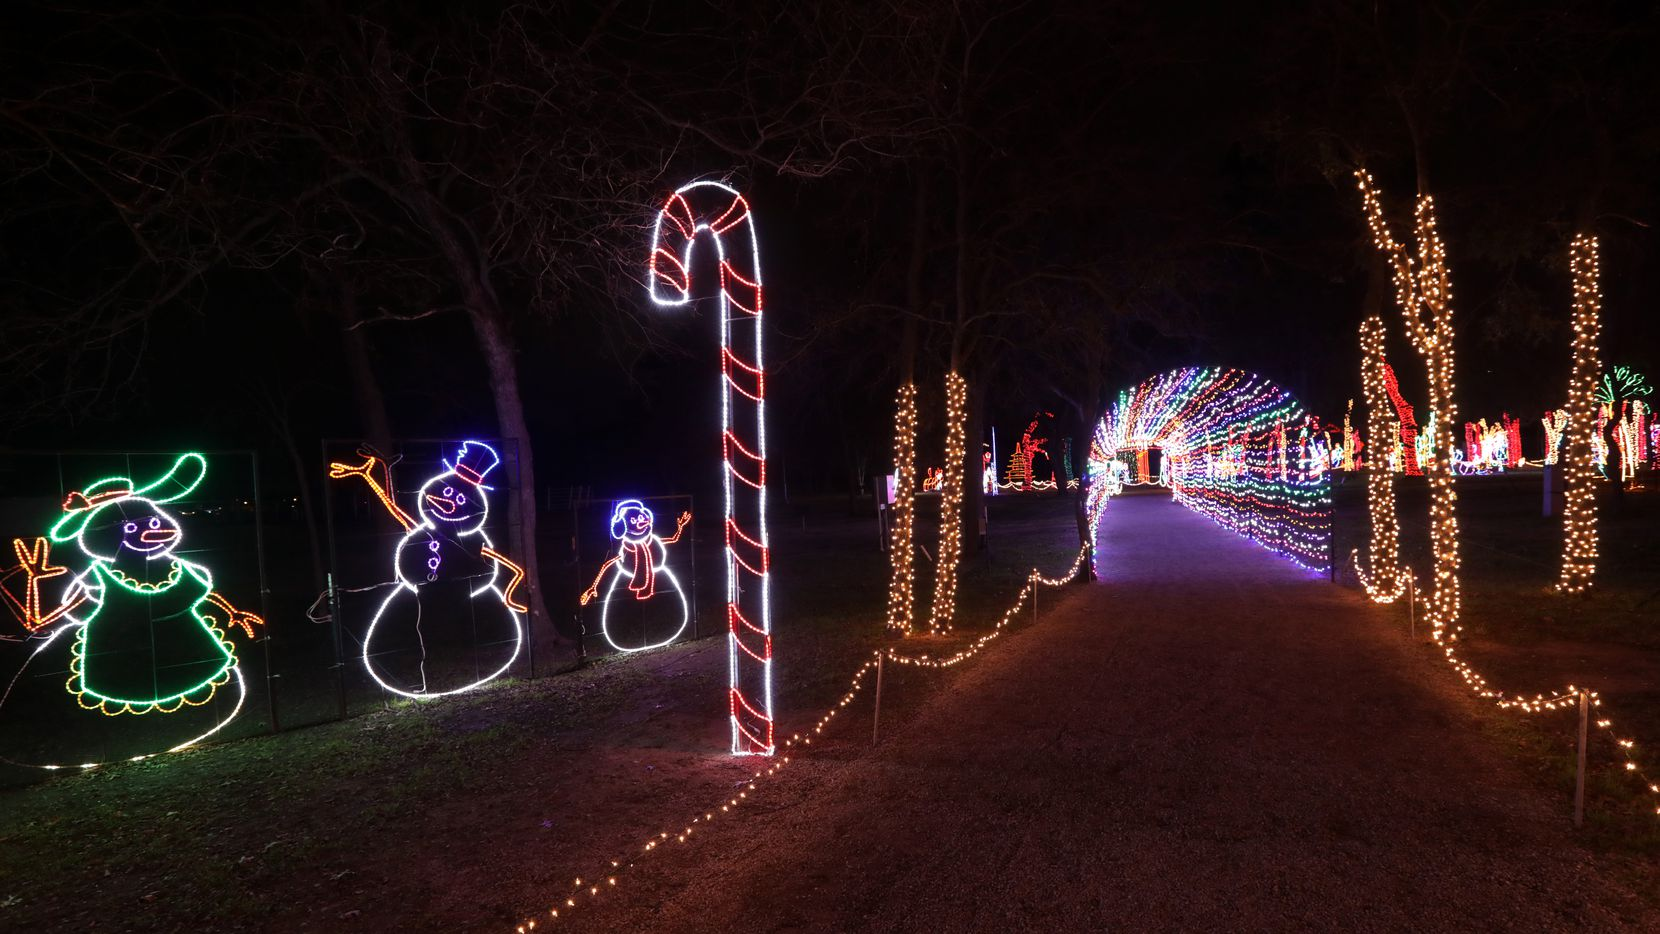 Prairie Lights is a drive-through attraction features around 4 million twinkling bulbs plus several new highlights this year.